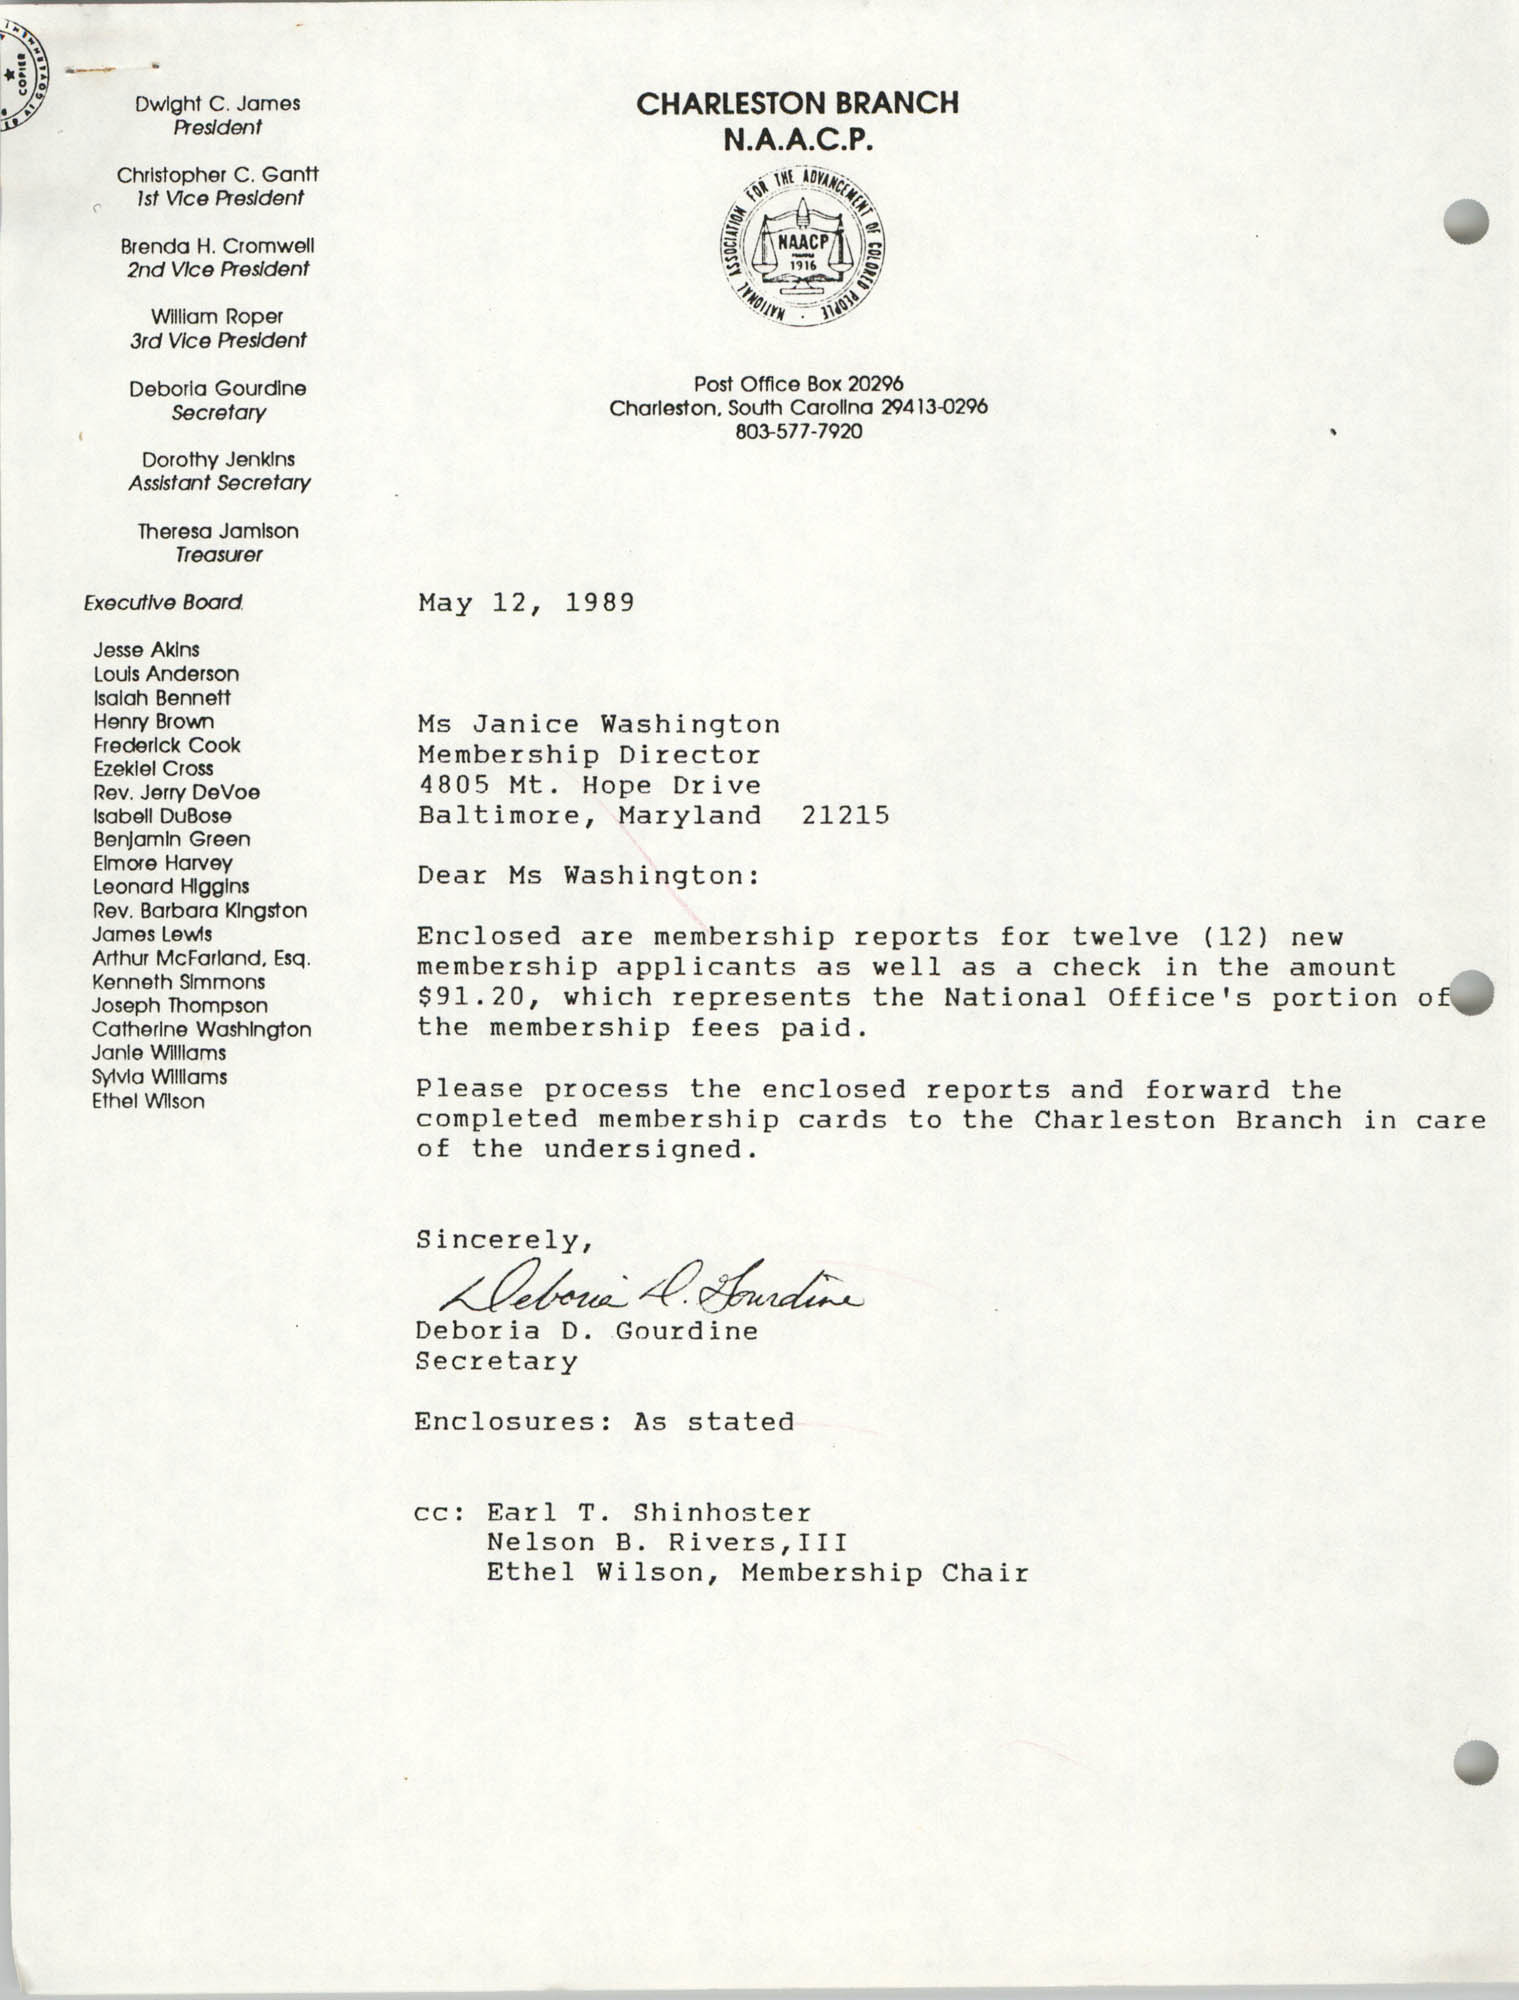 Letter from Deboria D. Gourdine to Janice Washington, NAACP, May 12, 1989